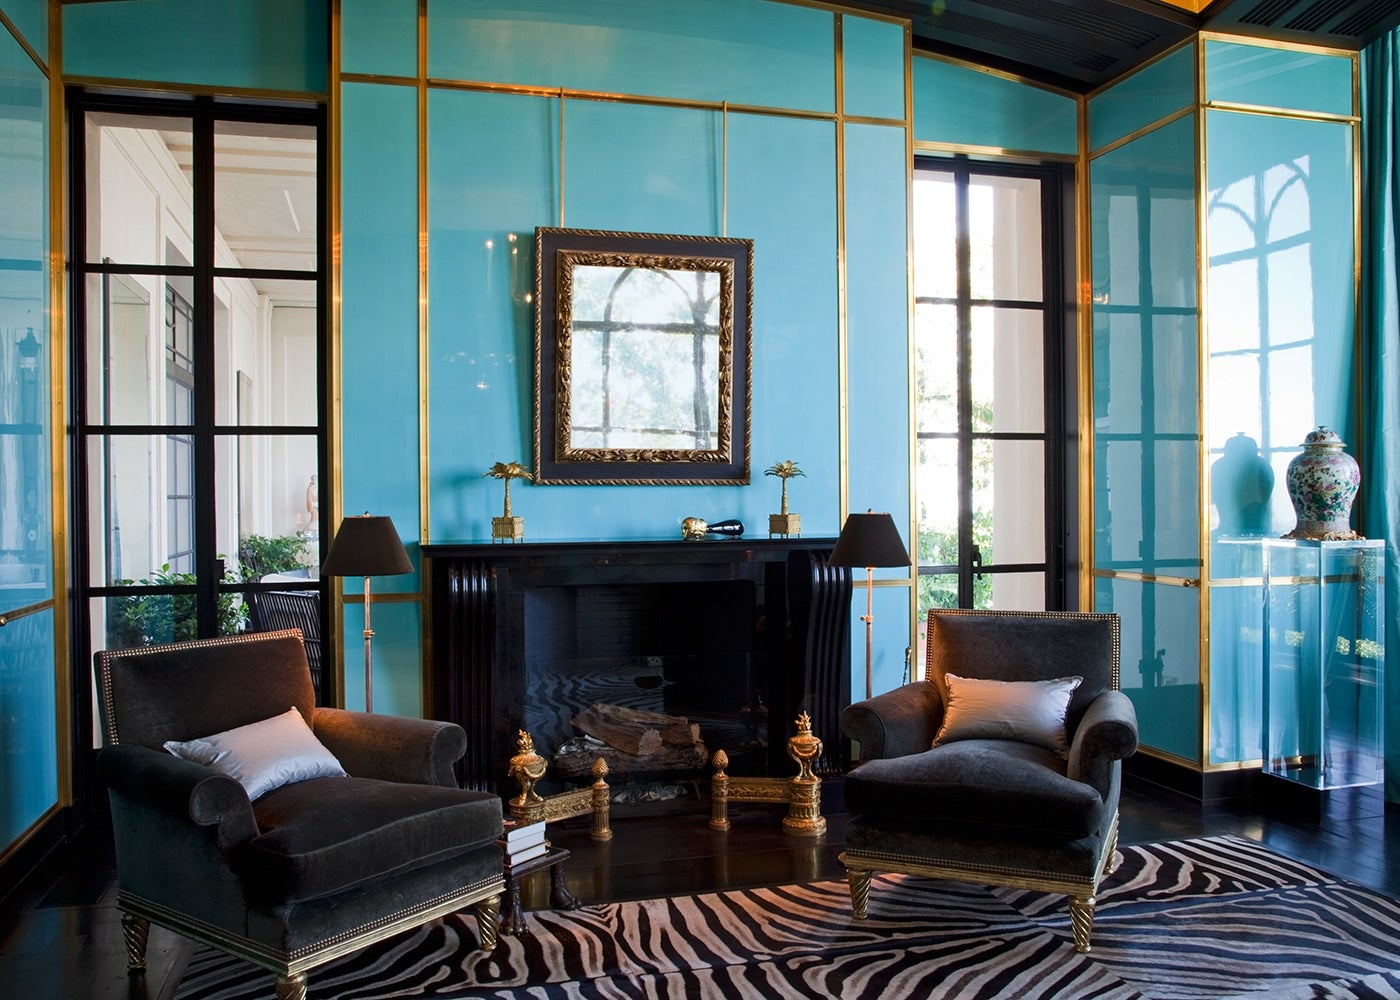 Brian j mccarthy 18 of the designer 39 s luxe interiors for Luxe interieur design